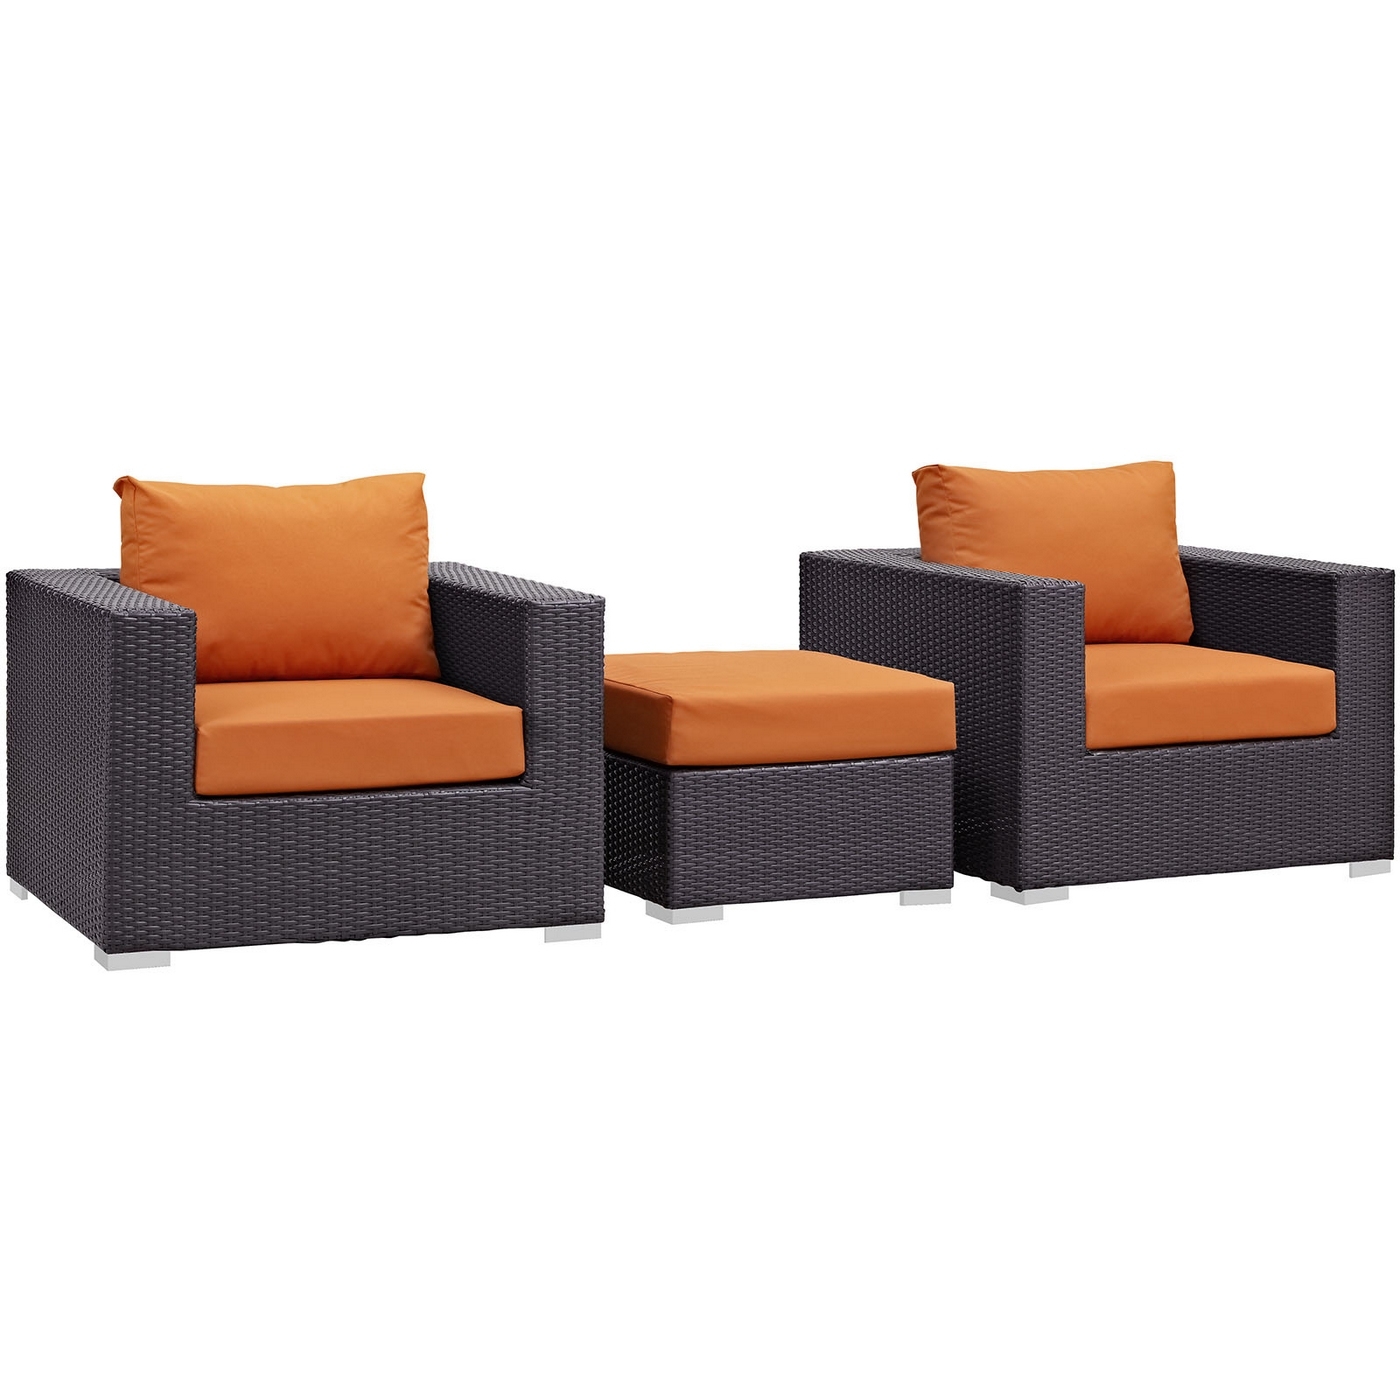 Convene Modular 3pc Rattan Outdoor Patio Sofa Set With Cushions Espresso Orange